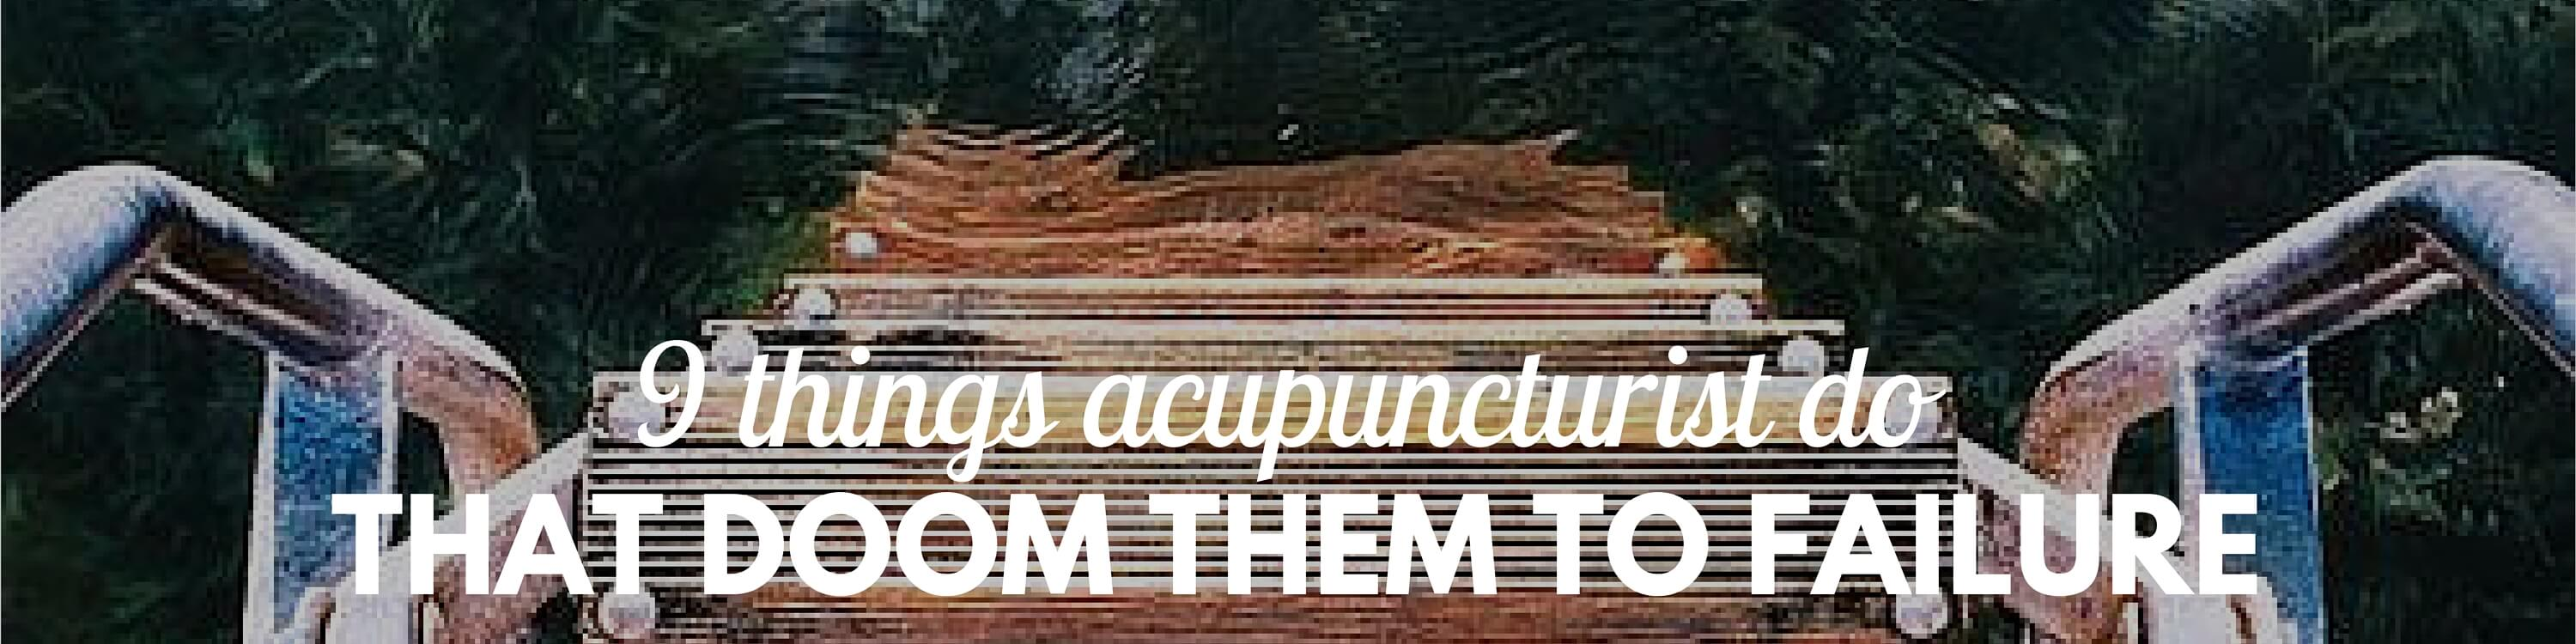 "Quote overlaid on a photo, ""Nine things acupuncturists do that doom them to failure""."